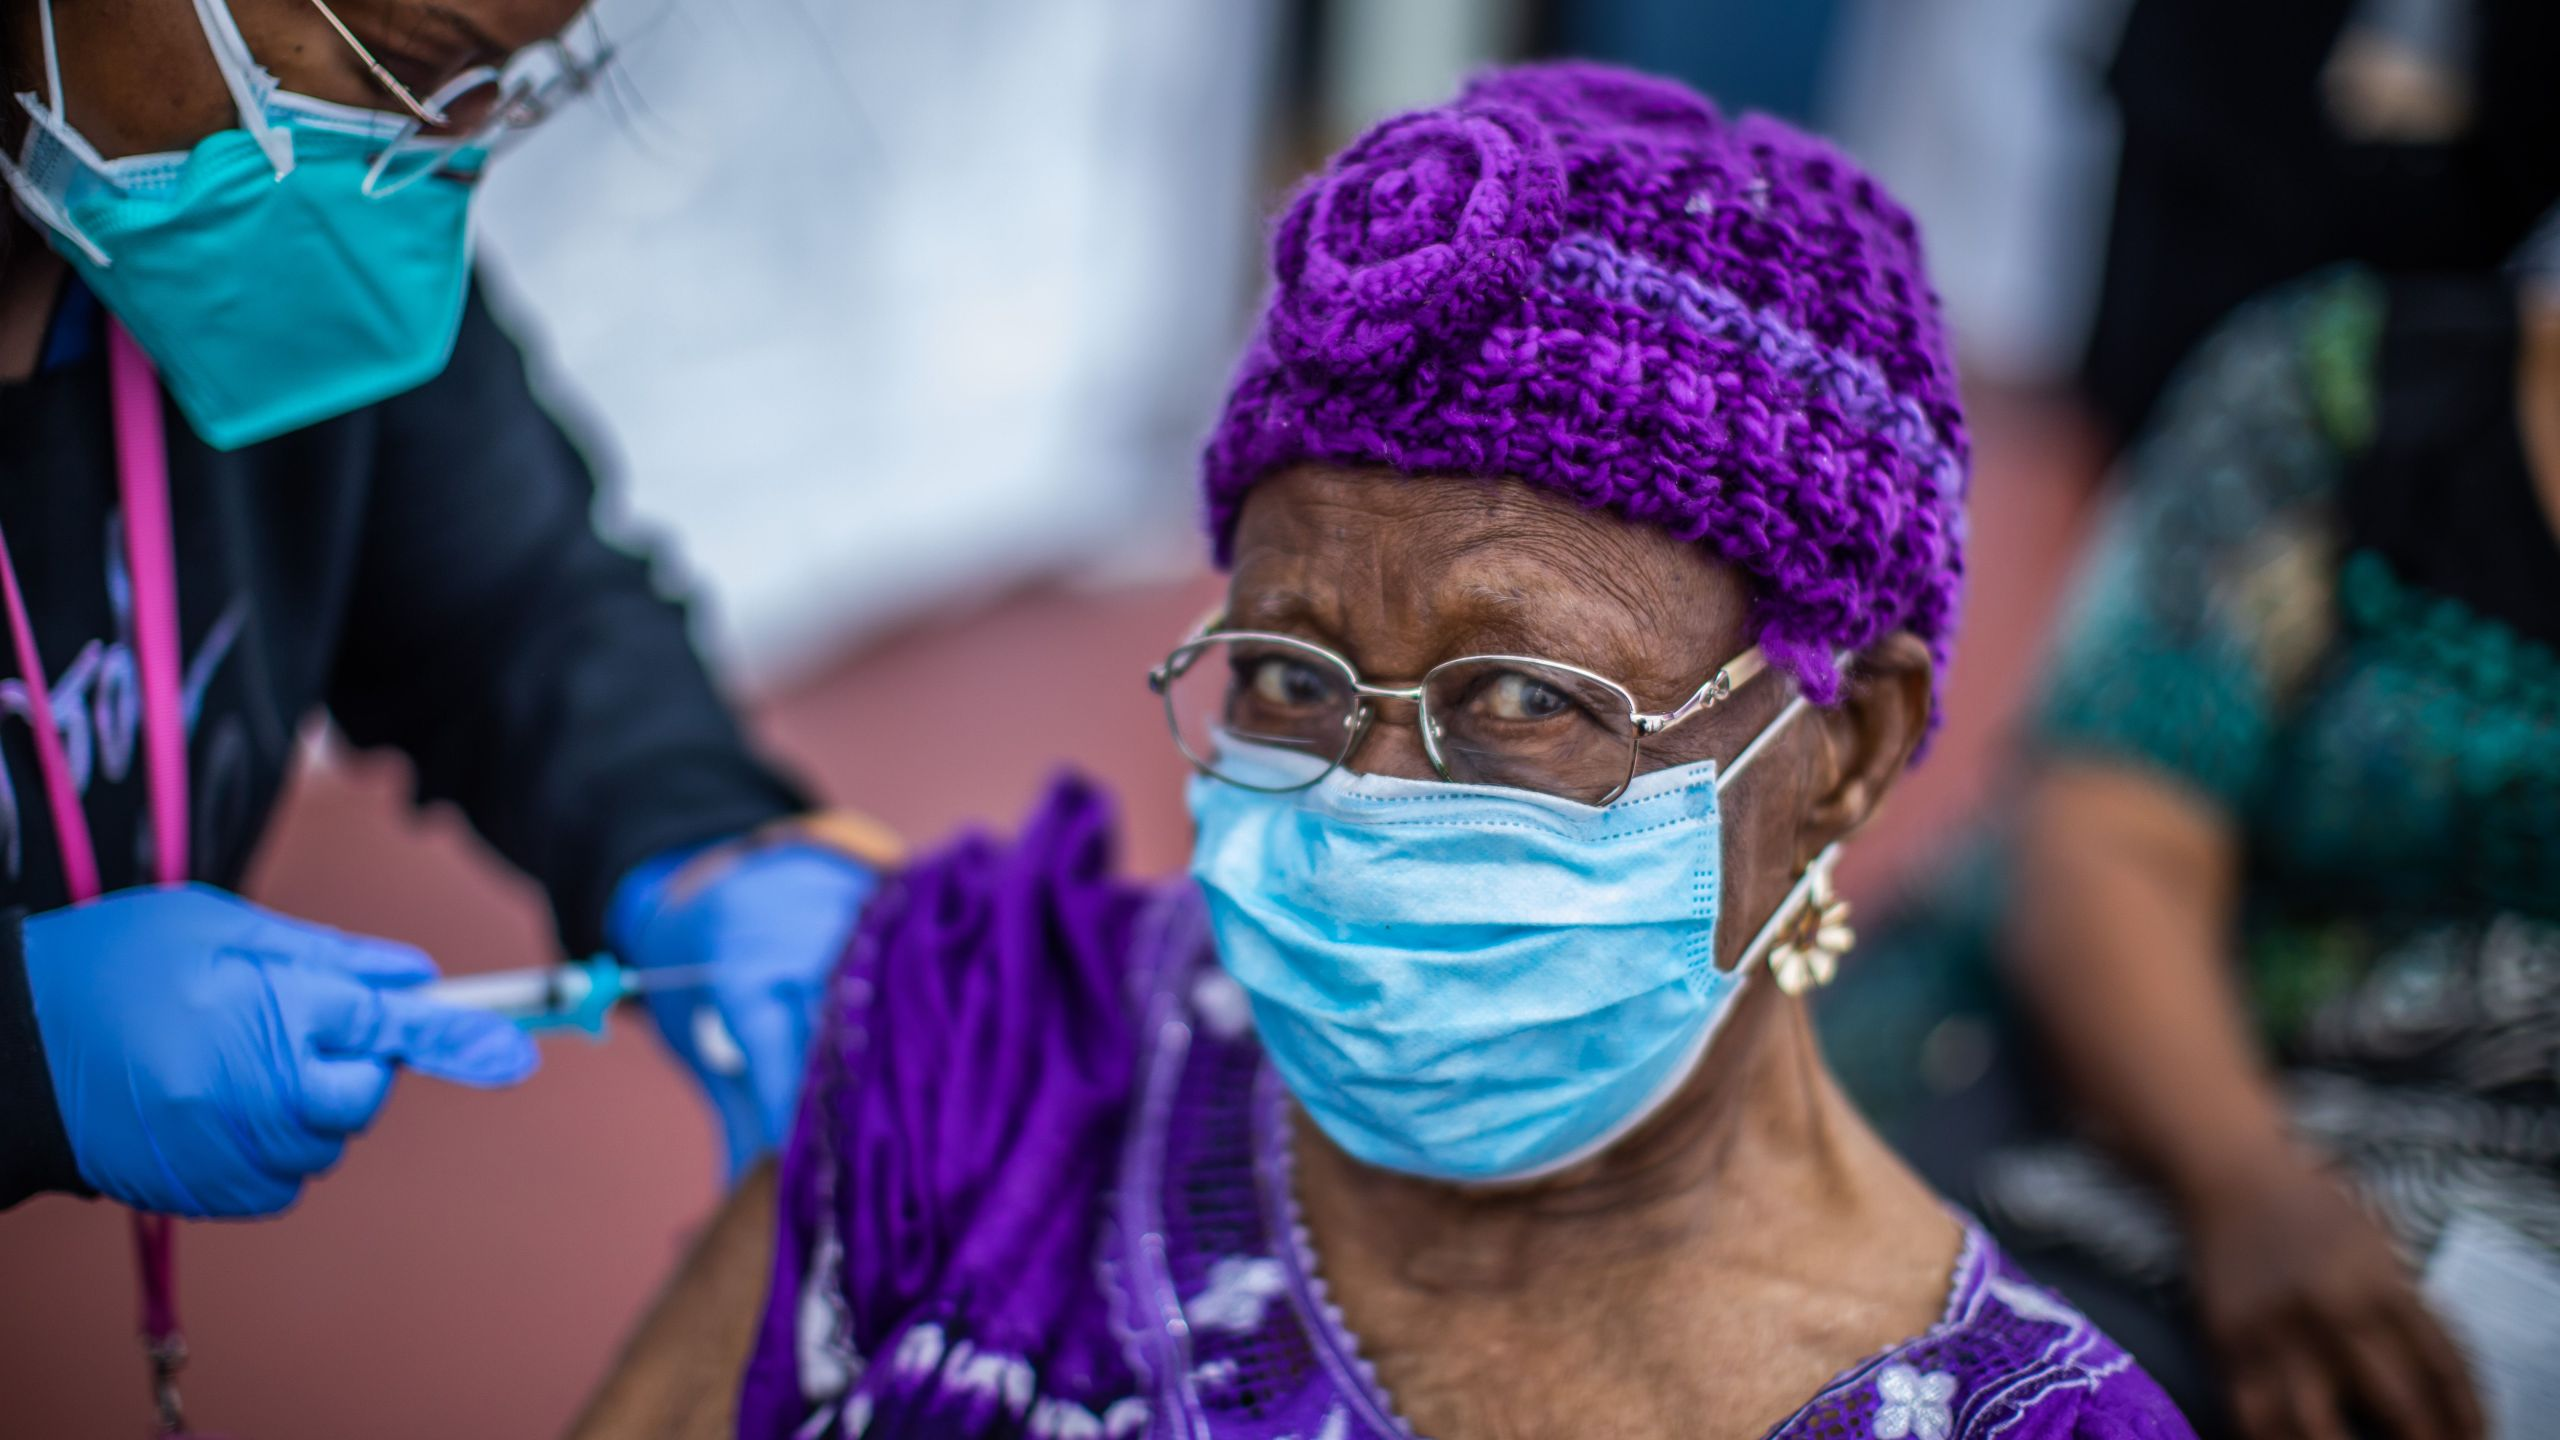 Registered Nurse Ebony Thomas administers a COVID-19 vaccine to Cecilia Onwytalu, 89, at the Kedren Community Health Center in South Los Angeles on Feb. 16, 2021. (Apu Gomes / AFP / Getty Images)